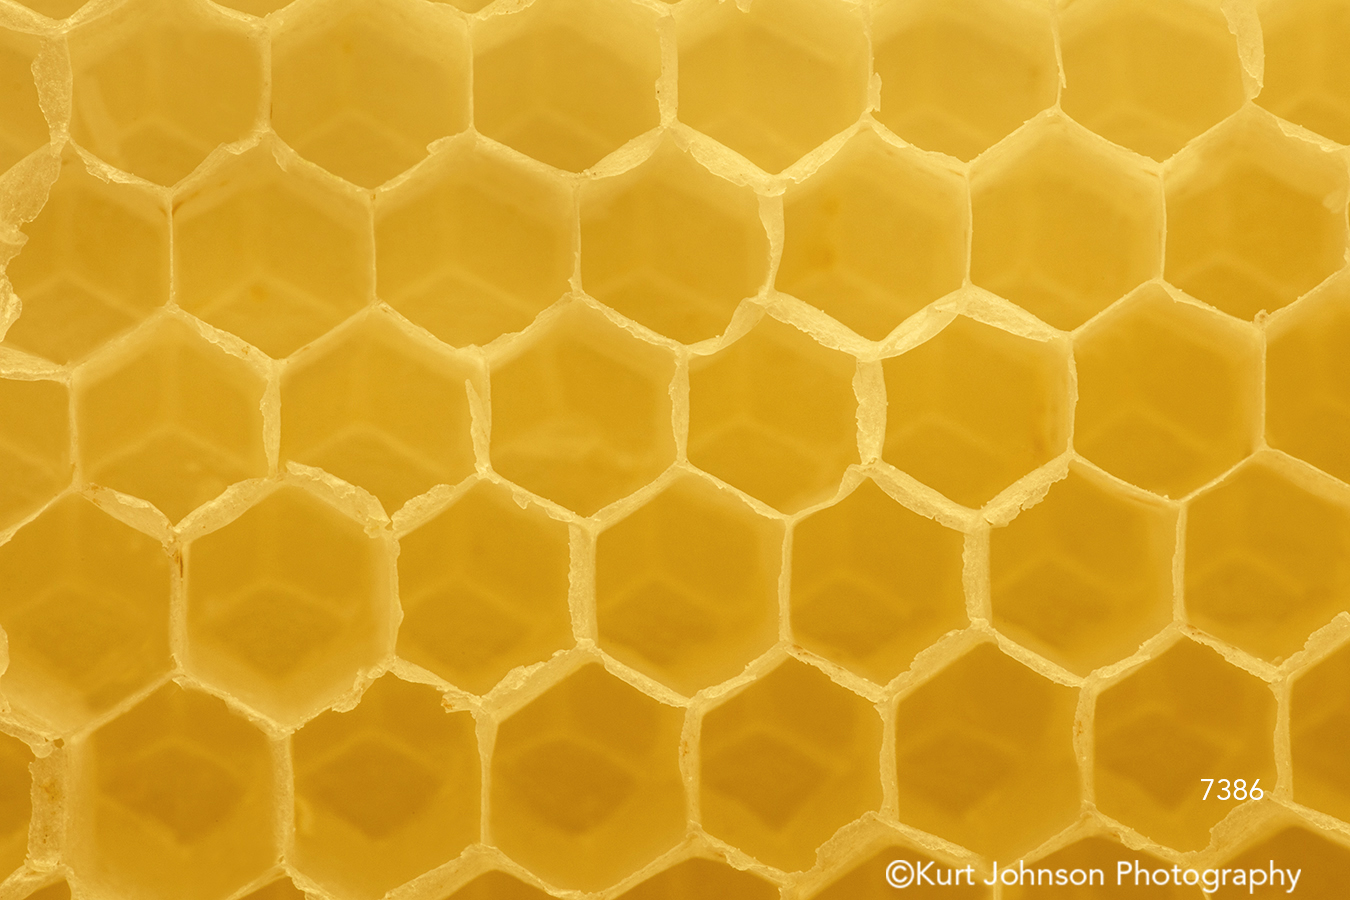 yellow texture honeycomb pattern lines shapes detail macro close up insect